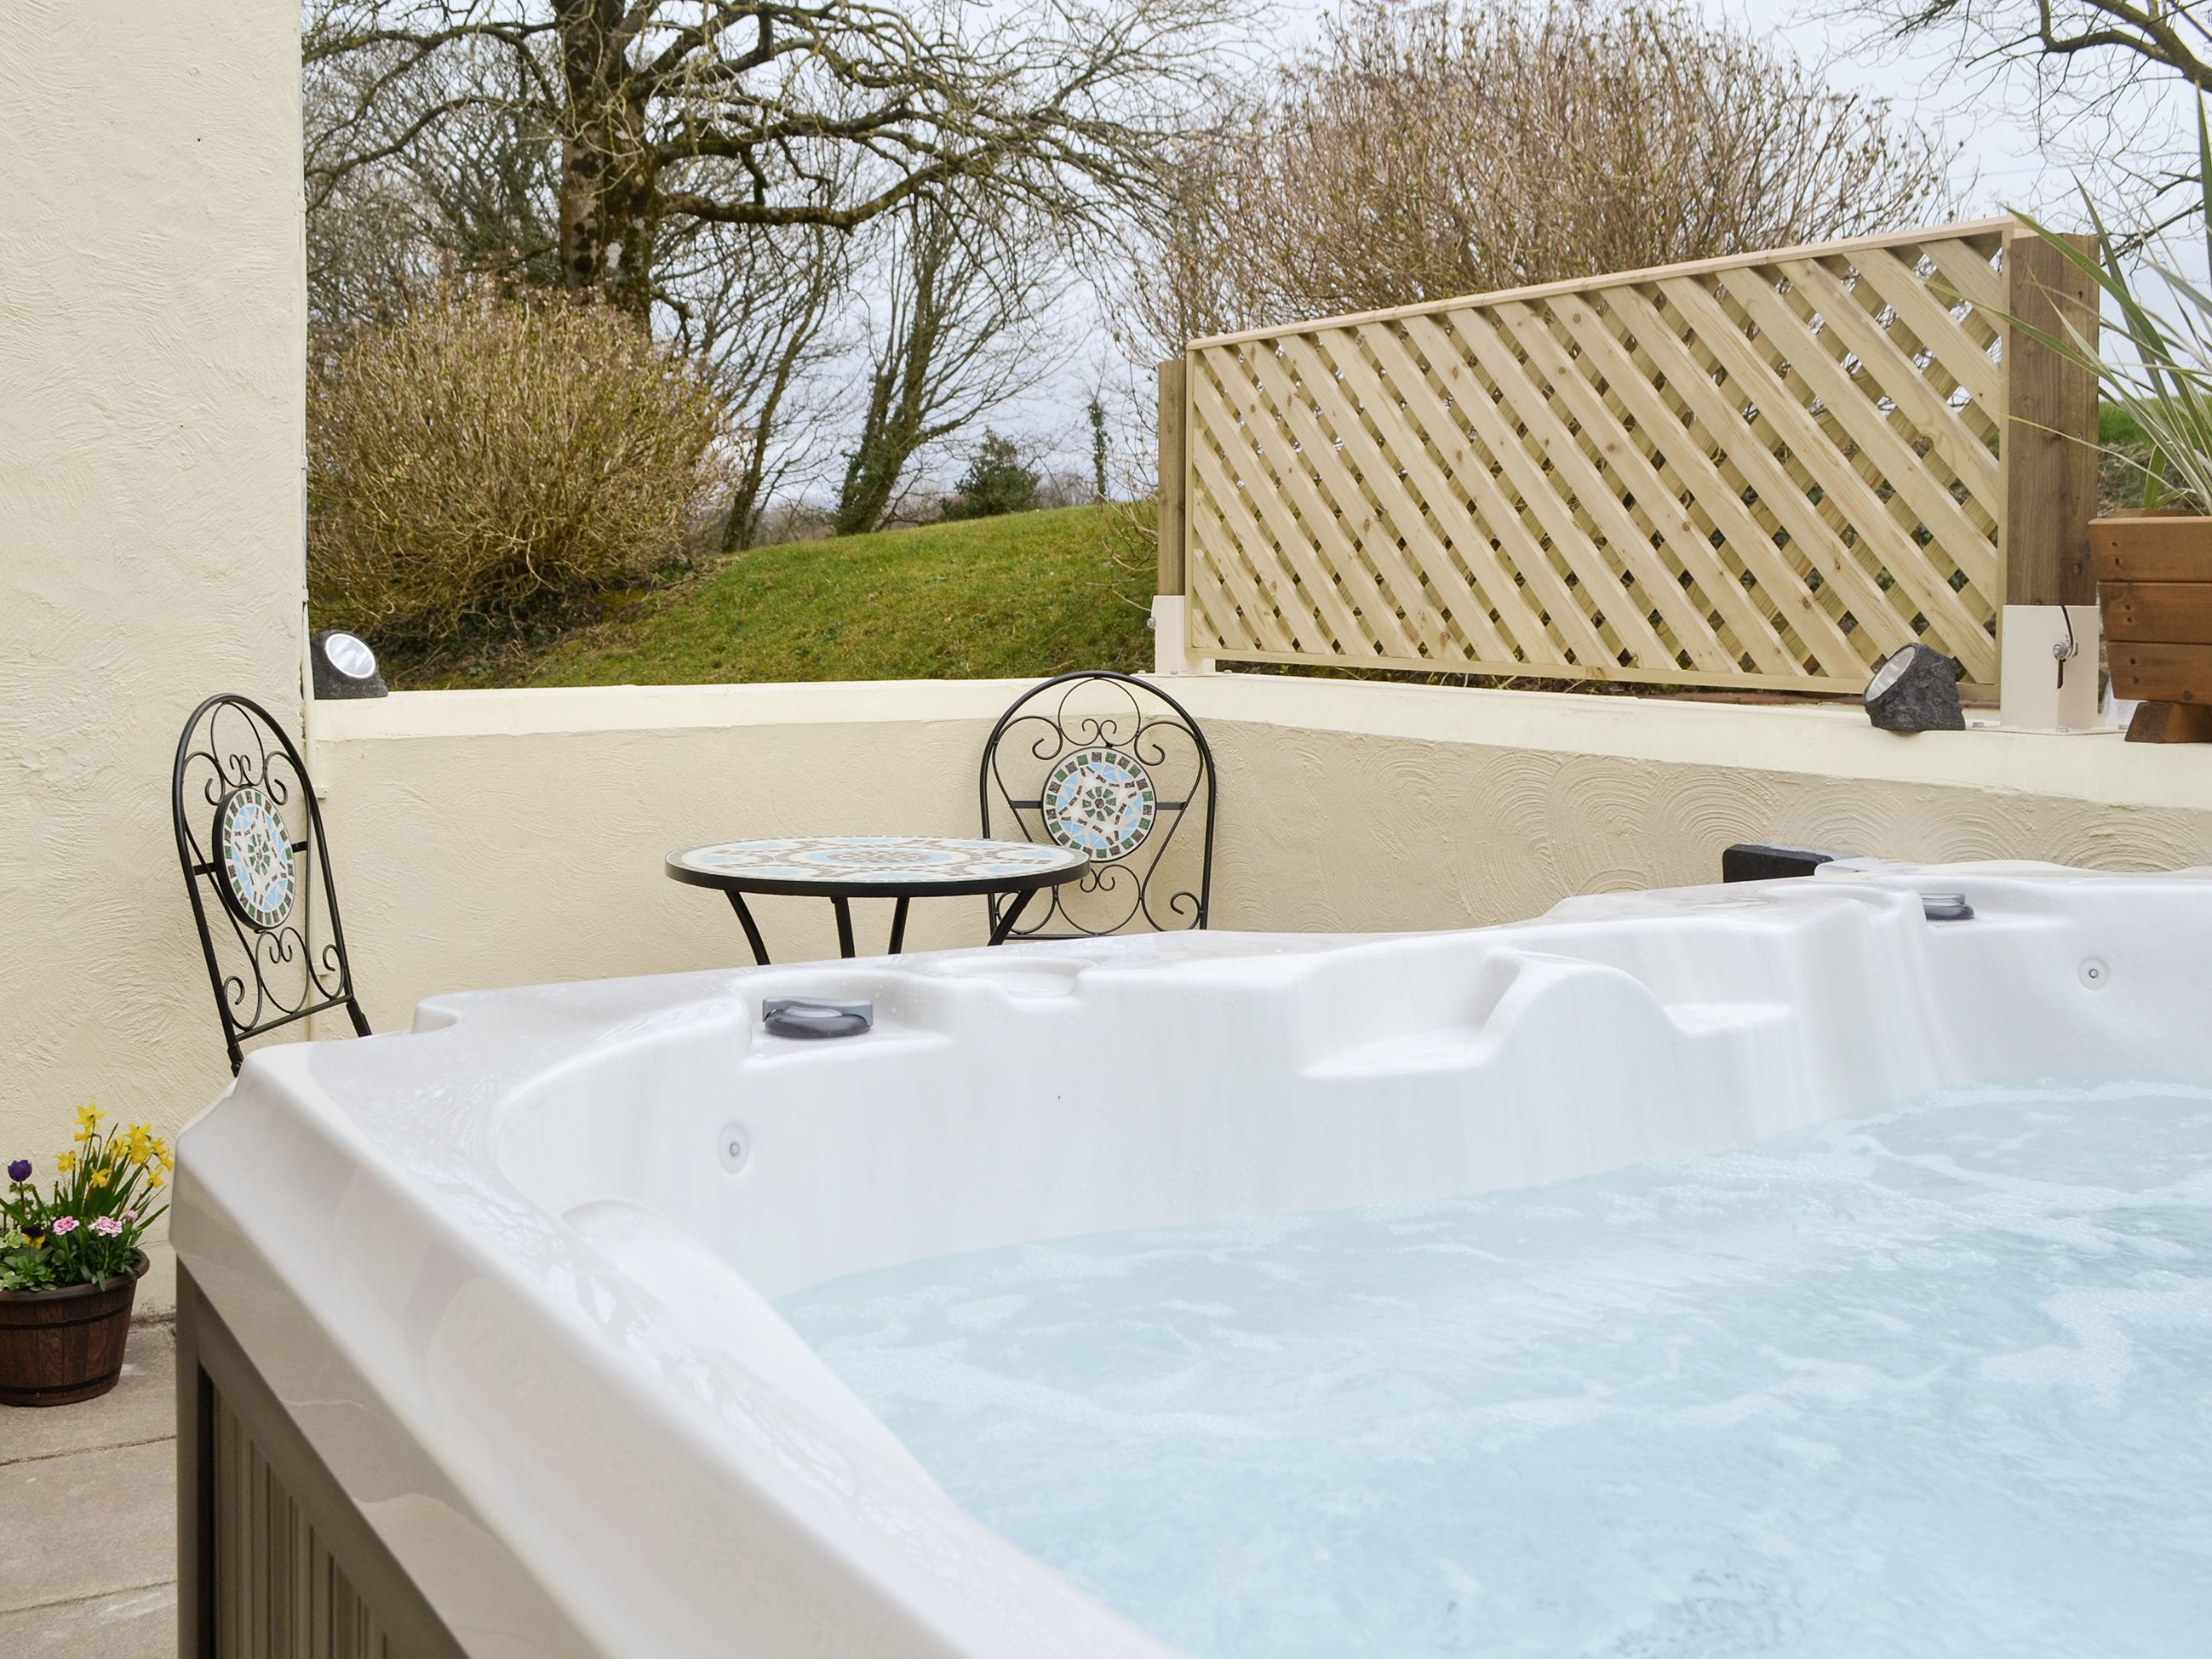 This Charming Detached Single Storey Property Offers Your Own Private Hot Tub Hot Tub Holidays Cottage Holiday Home